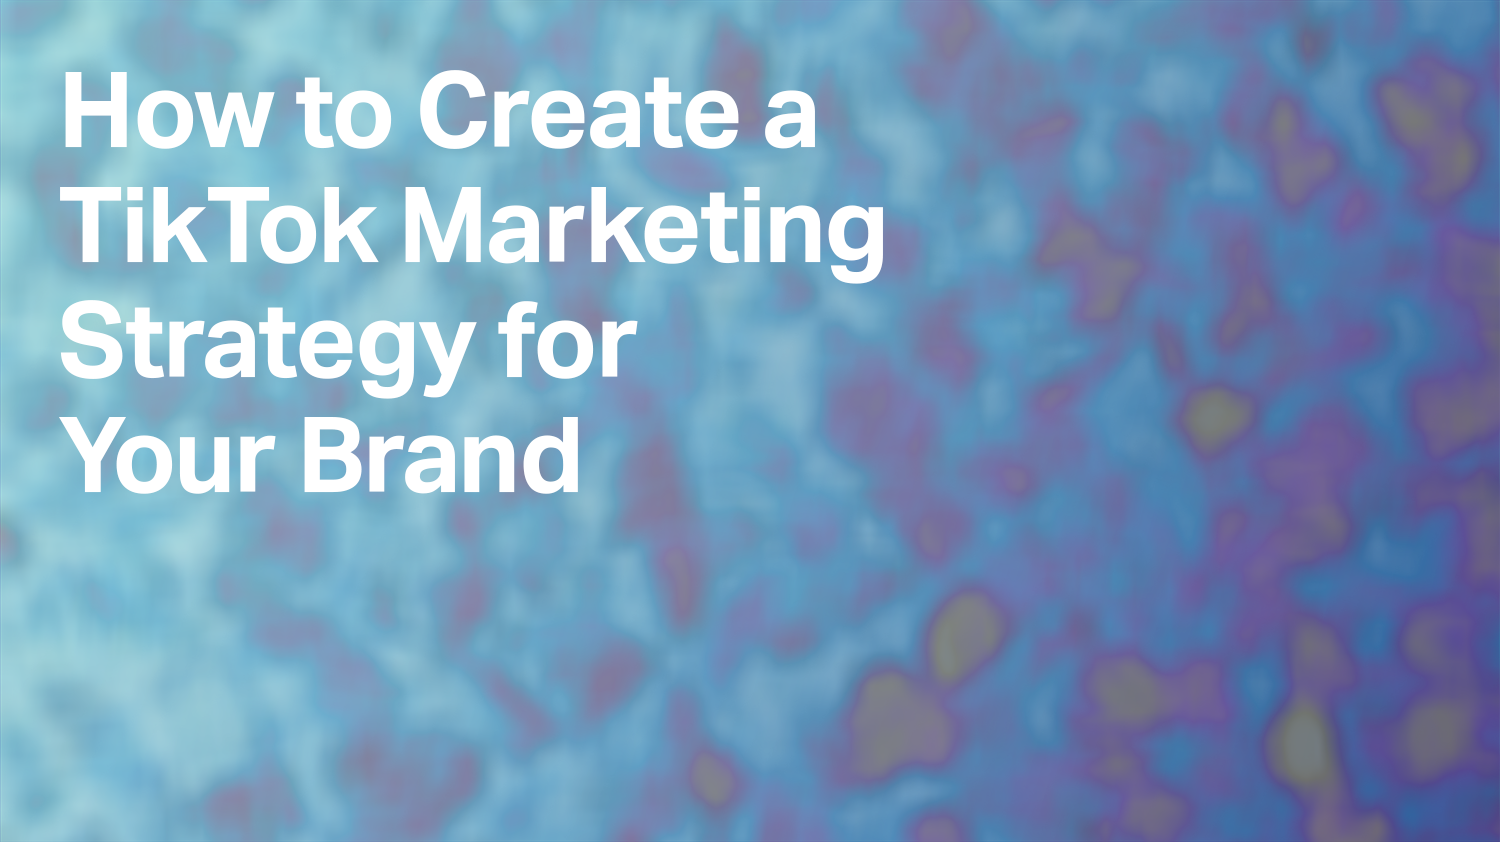 How to Create a TikTok Marketing Strategy for Your Brand